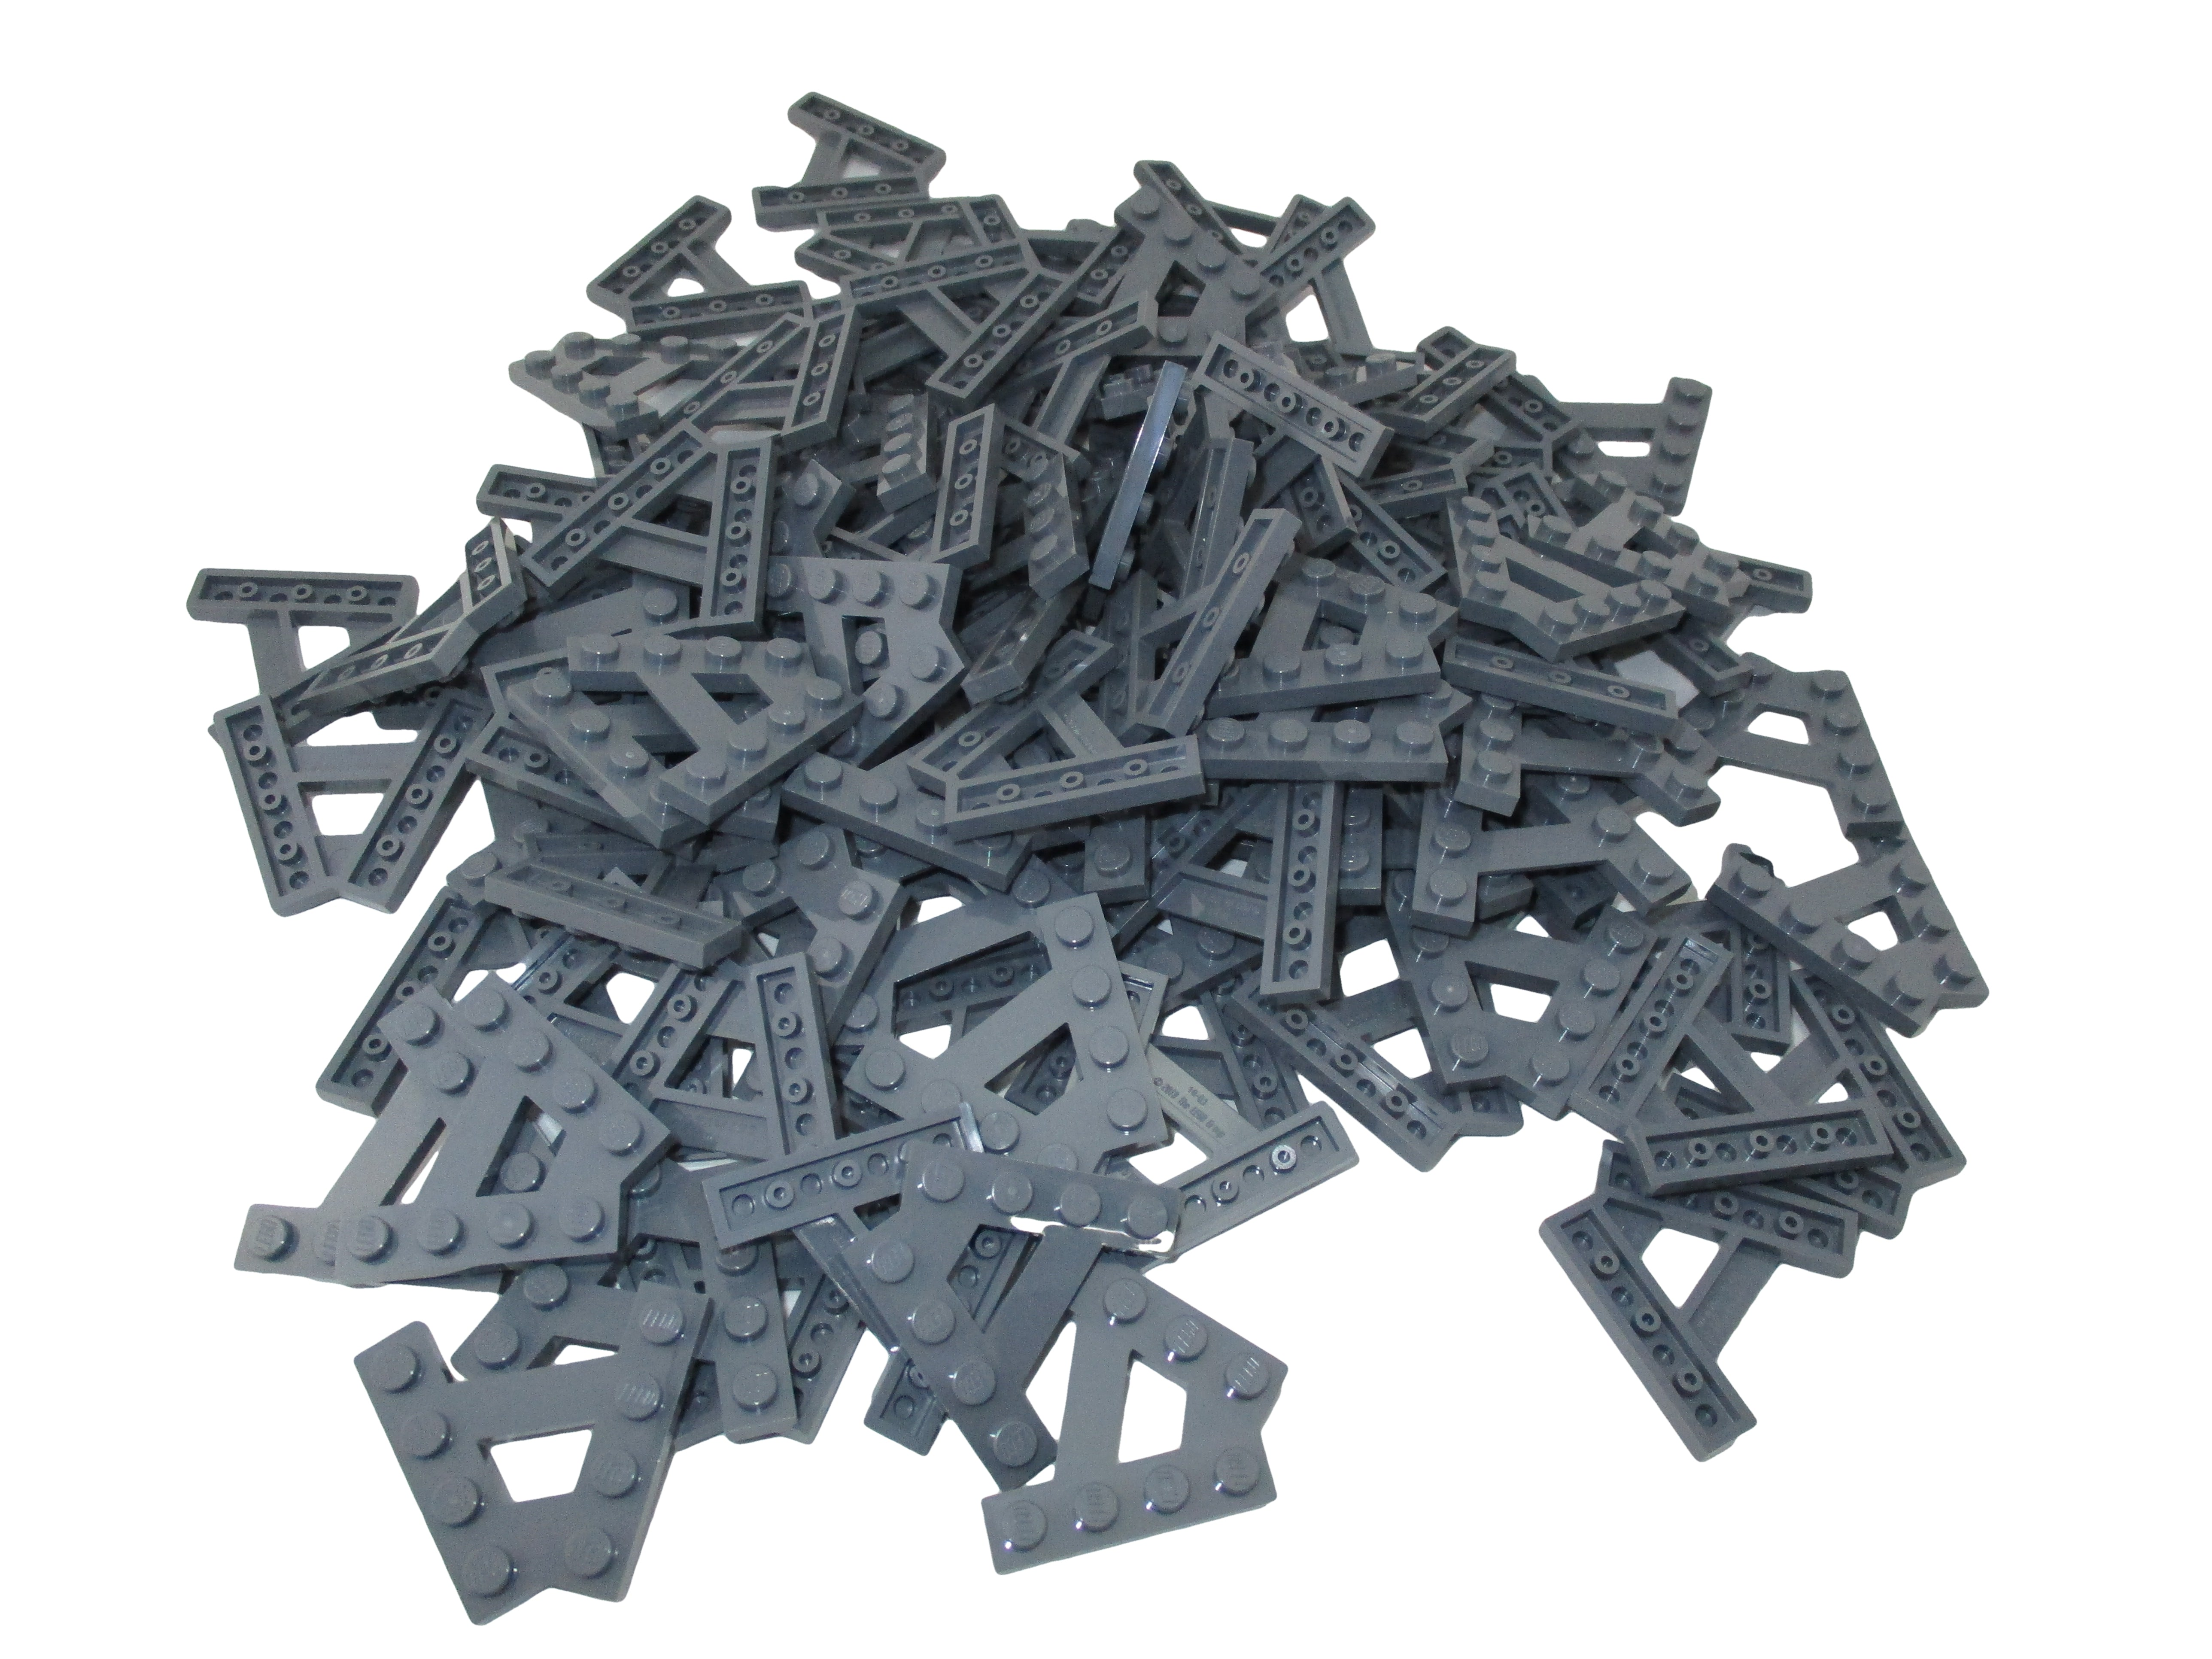 LEGO Dark Bluish Gray Wedge Plate A-Shape 2 Rows of 4 Studs Lot of 100 Parts Pieces 15706